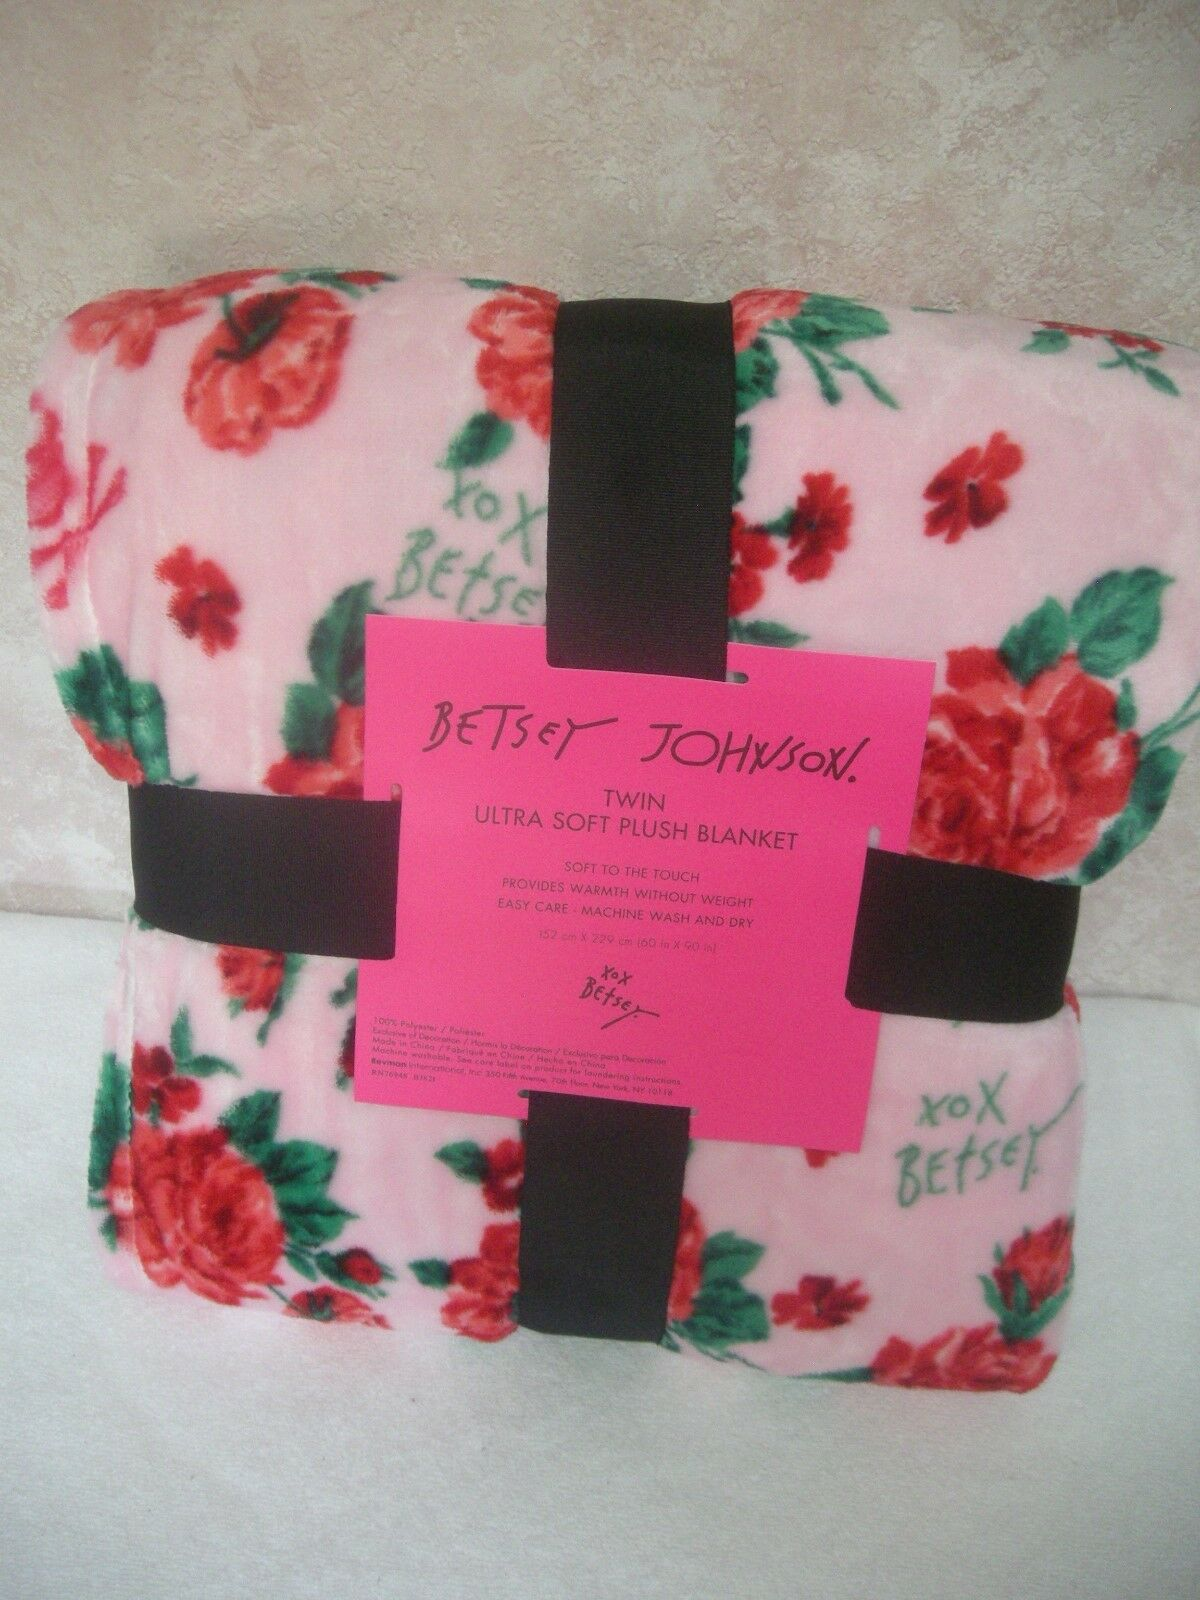 Betsey Johnson TWIN Ultra Soft Throw Blanket Pink Red Grn Floral Skulls 60 X 90